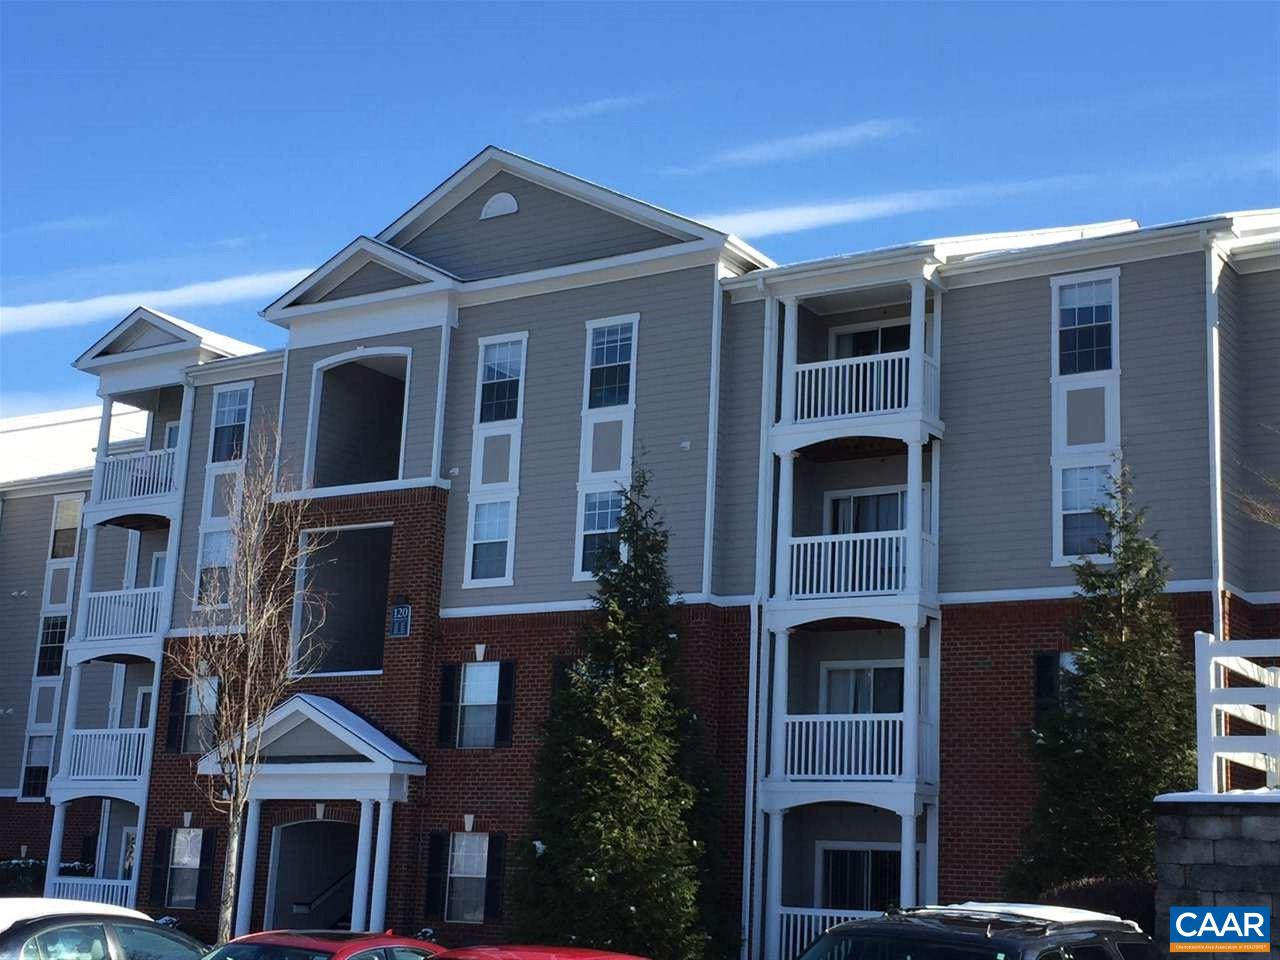 Very well maintained 3 bedroom and 3 bathroom condo only 152.5k! Excellent investment property with a monthly rent of $1,545 and leases ending July 15th, 2019 - 2020. Only minutes from UVA, Wegmans, downtown, interstate 64 and more. Amenities include shuttle to UVA/PVCC, gated, large clubhouse, business center, meeting room, fitness center, game room, pool, basketball, volleyball, and car wash. HOA includes cable, water and sewer. Rents and values continuing to go up in Eagles Landing!